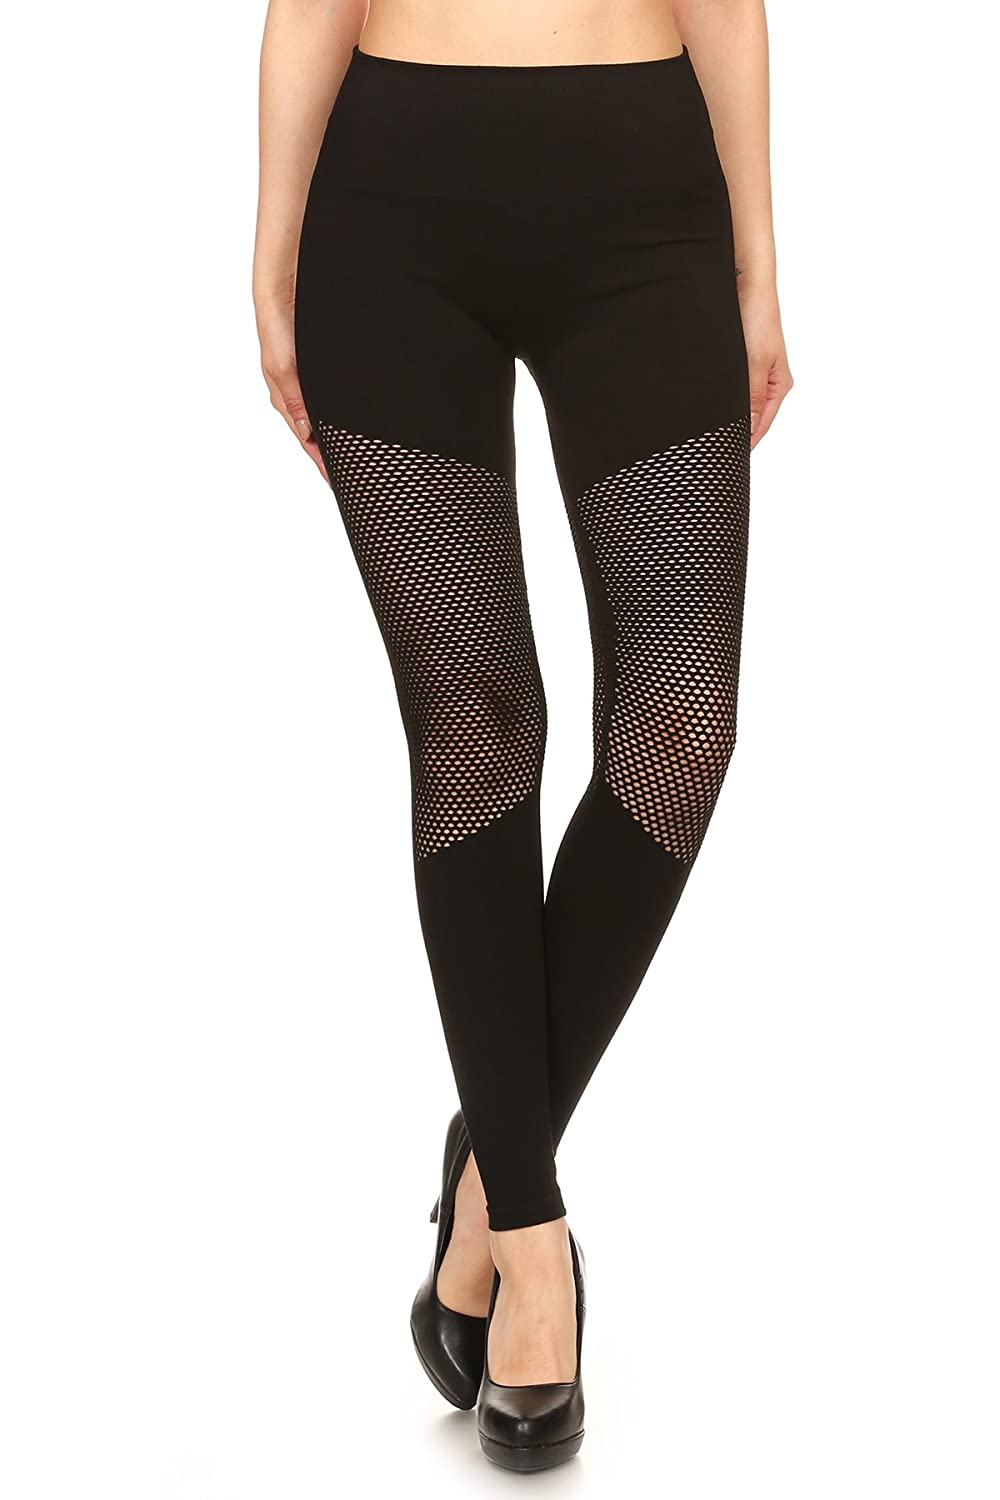 8ae42e6782e1d Solid, High waisted leggings in fit style, with an elastic waistband,  Cutouts Full Length, Perfect for any day to day activity or to Dress them  up for a ...